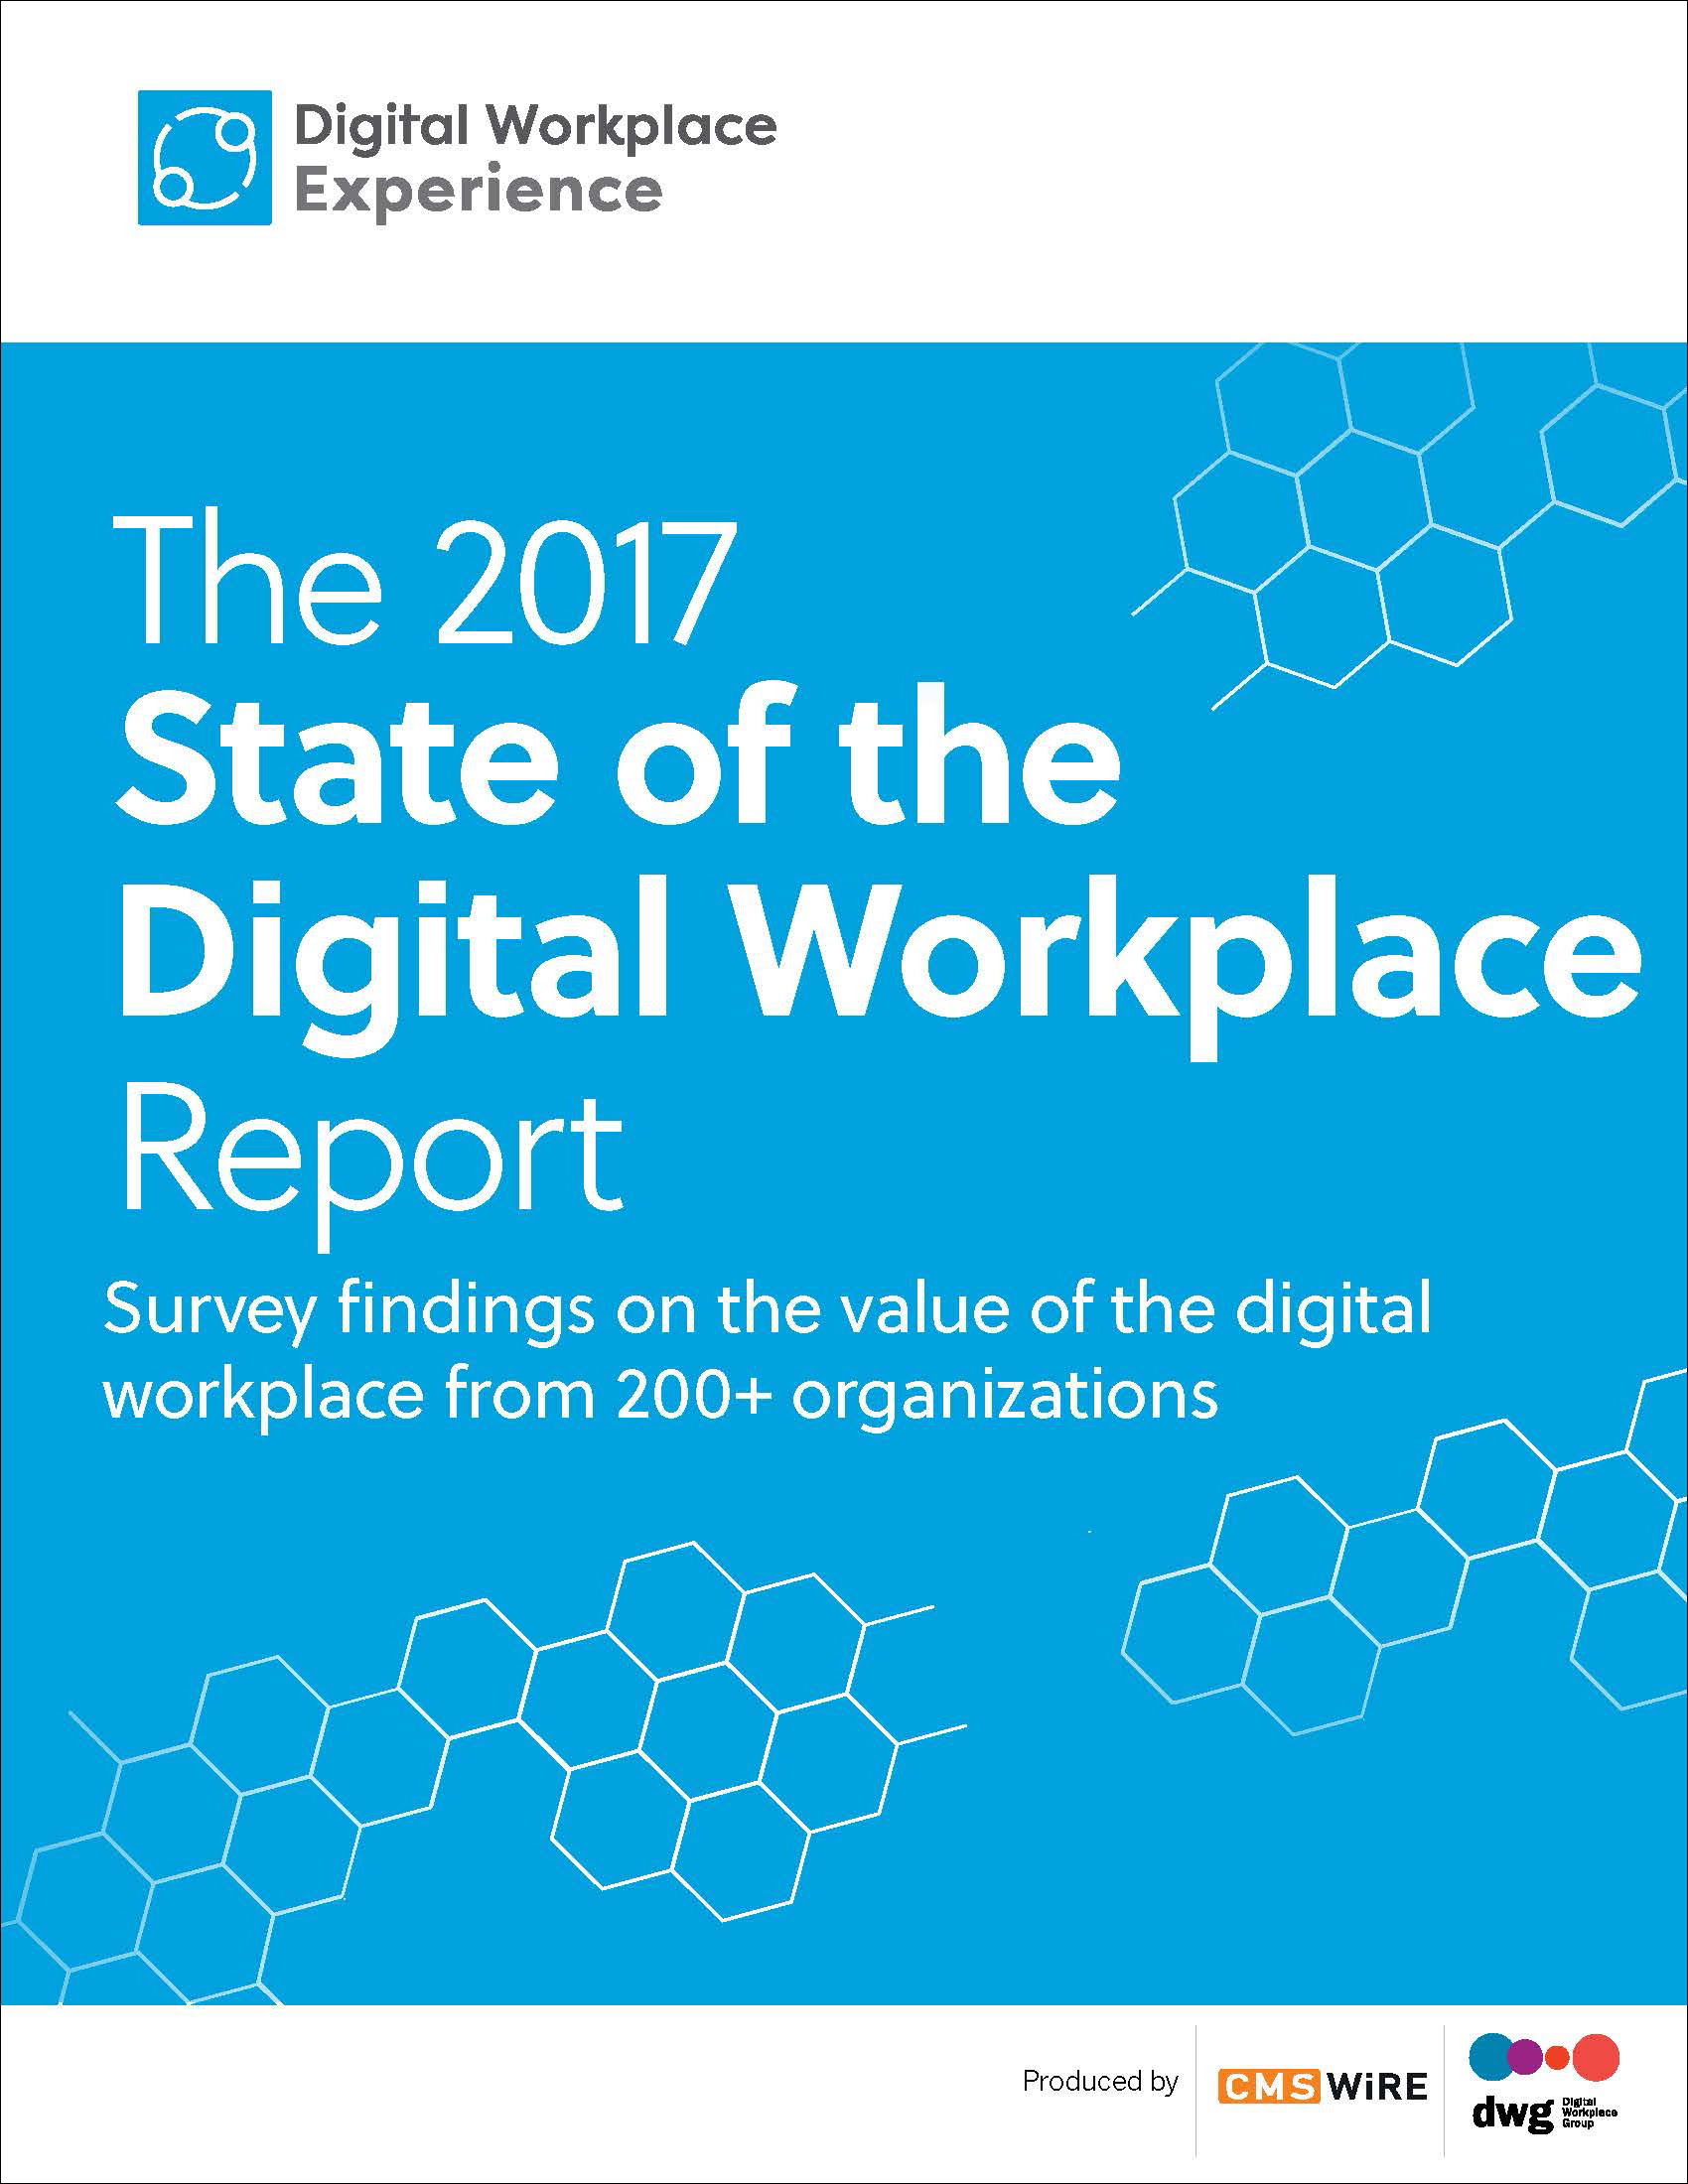 The 2017 State of the Digital Workplace Report